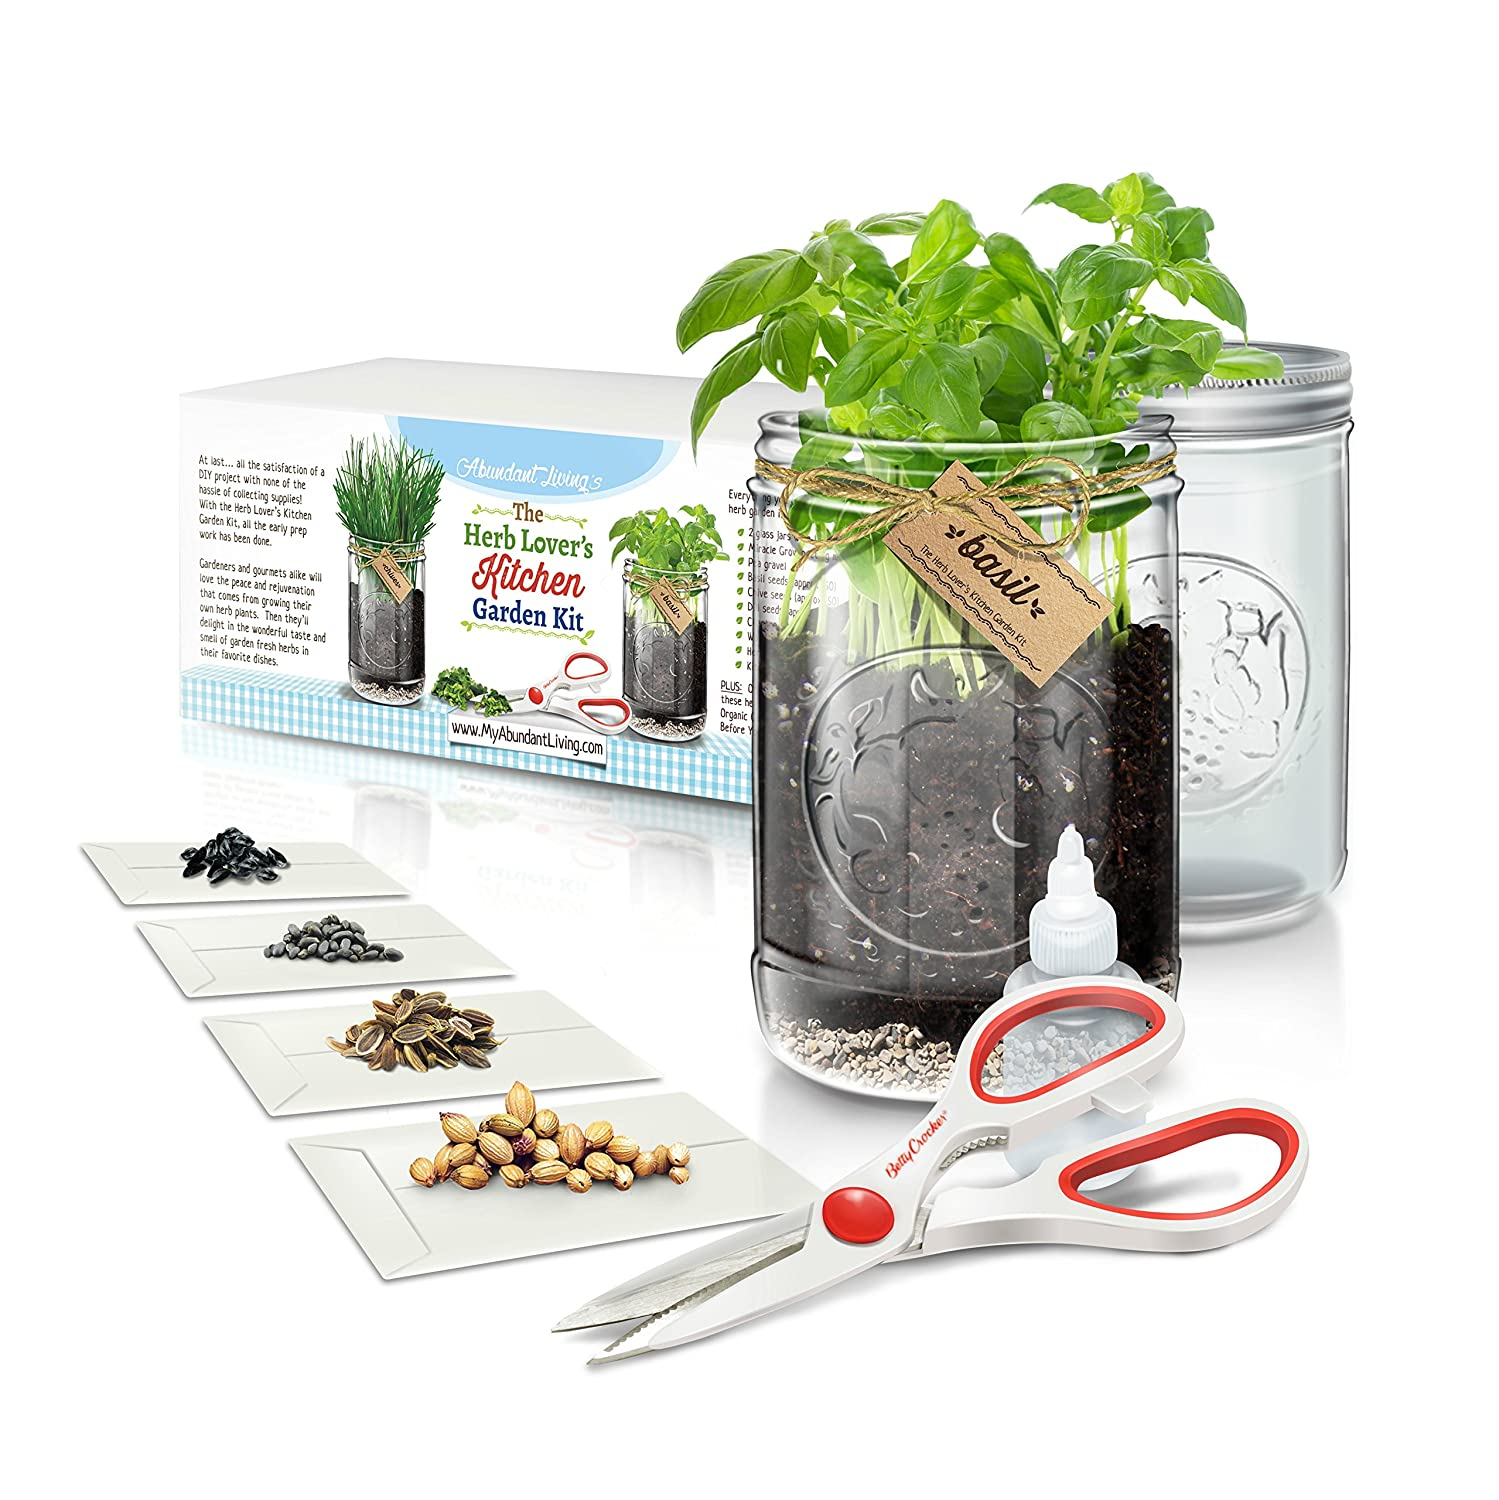 Kitchen Garden Project Amazoncom Herb Lovers Kitchen Garden Kit By Abundant Living